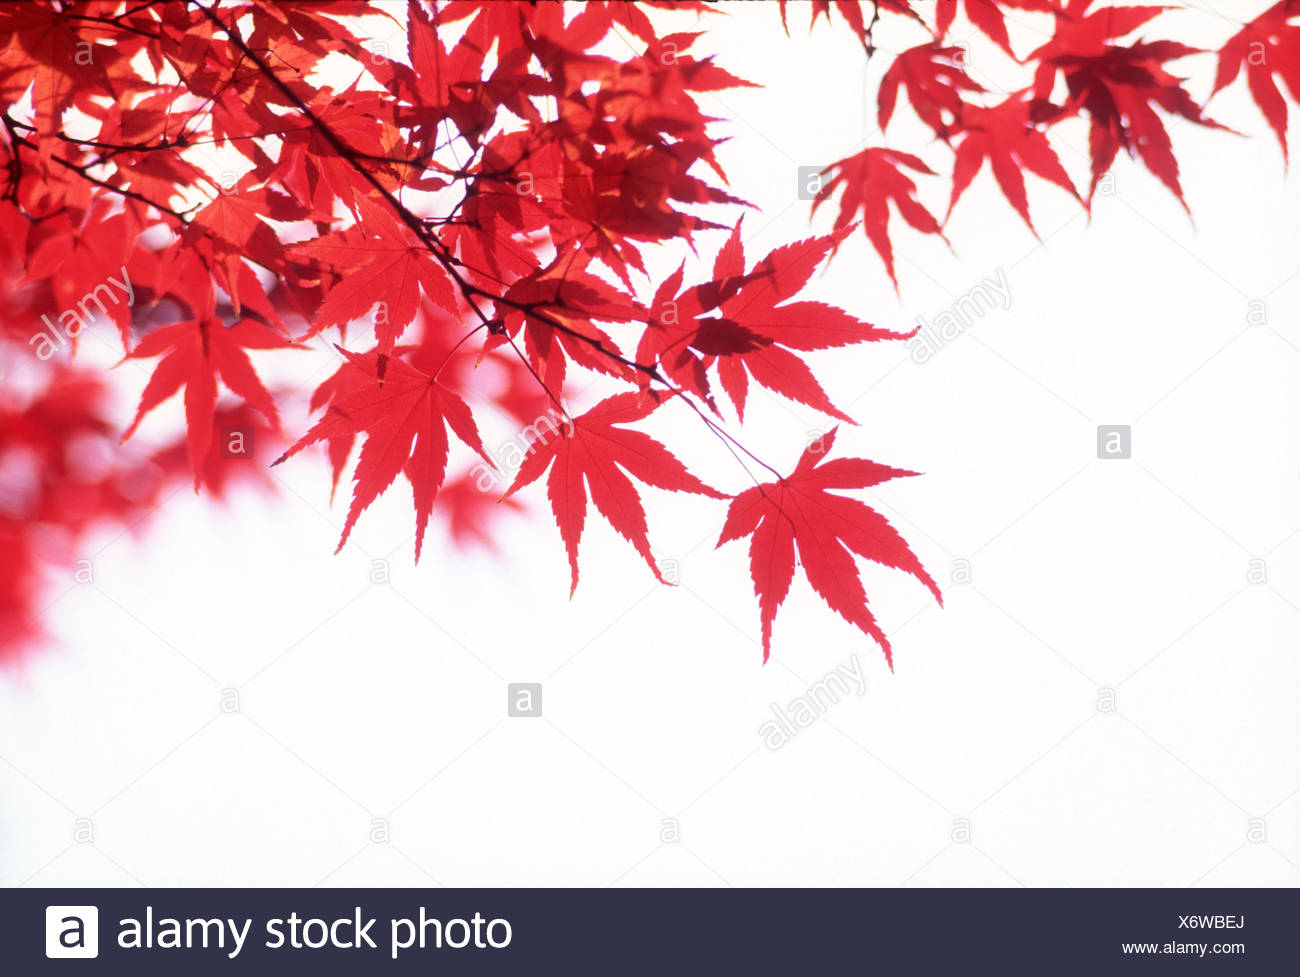 View of stems with red leaves - Stock Image